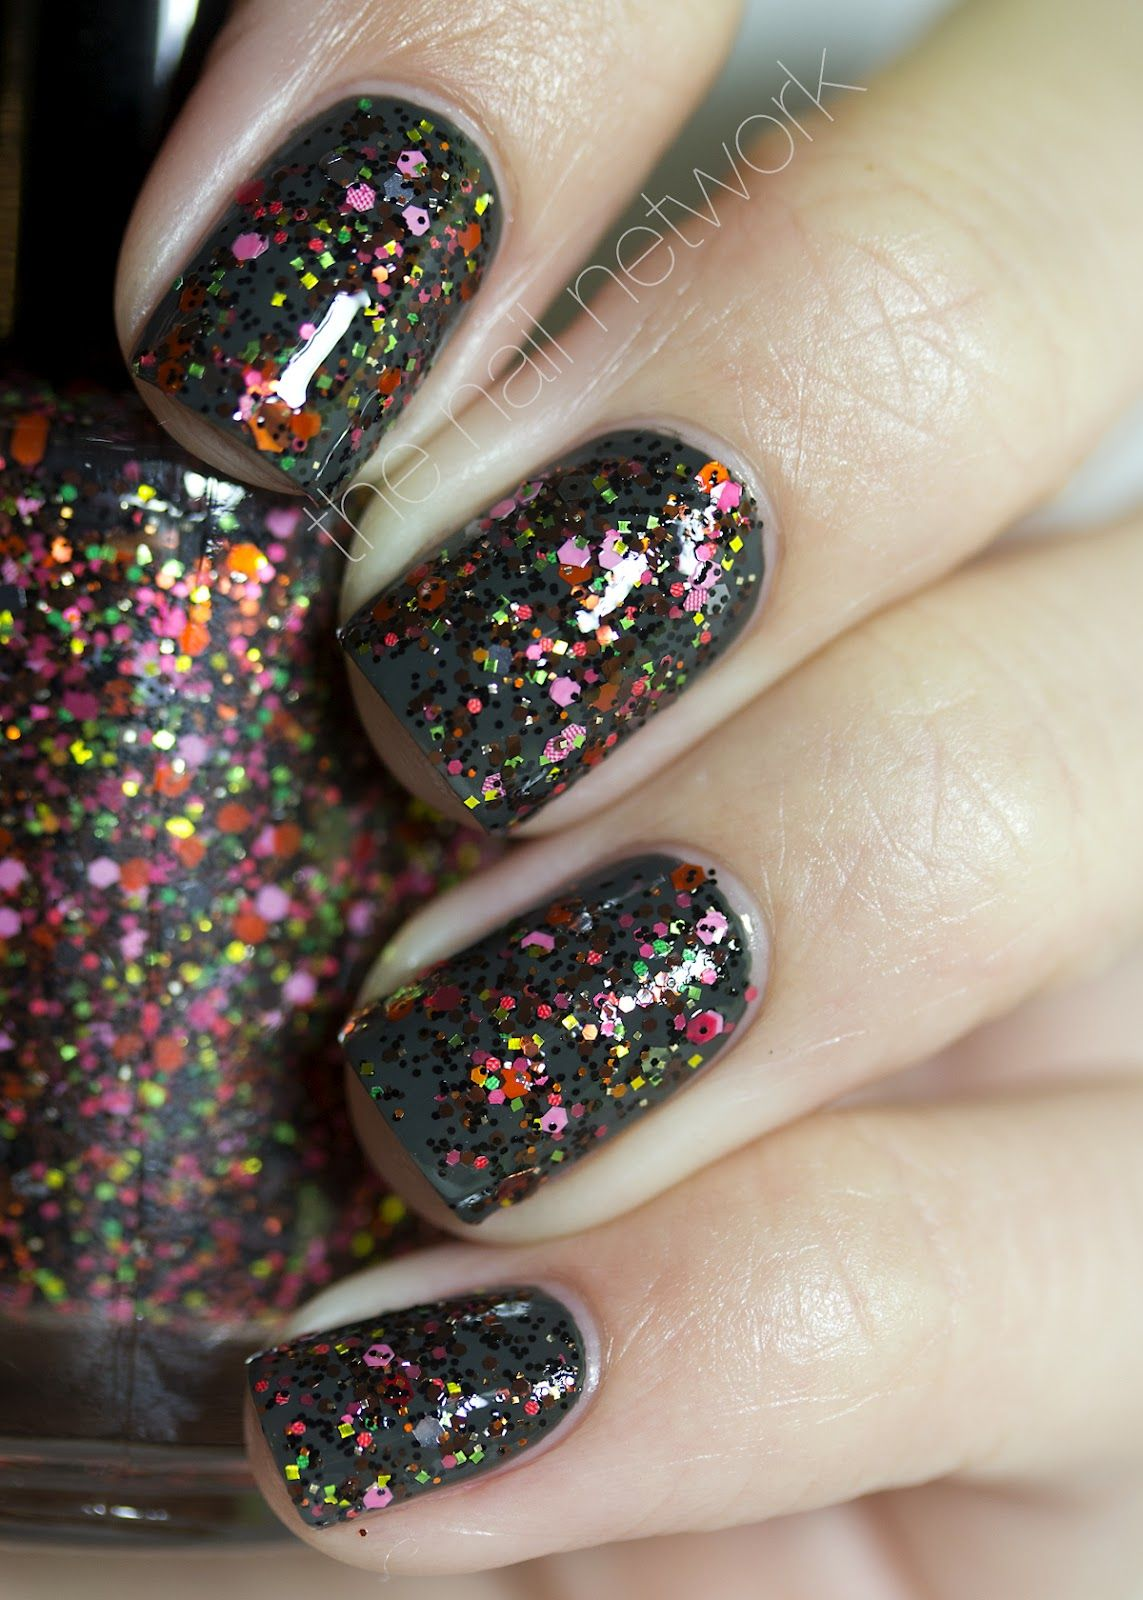 The Nail Network: Naild'It Summer Lovin' Melon & Girls Gone Wild in Camo